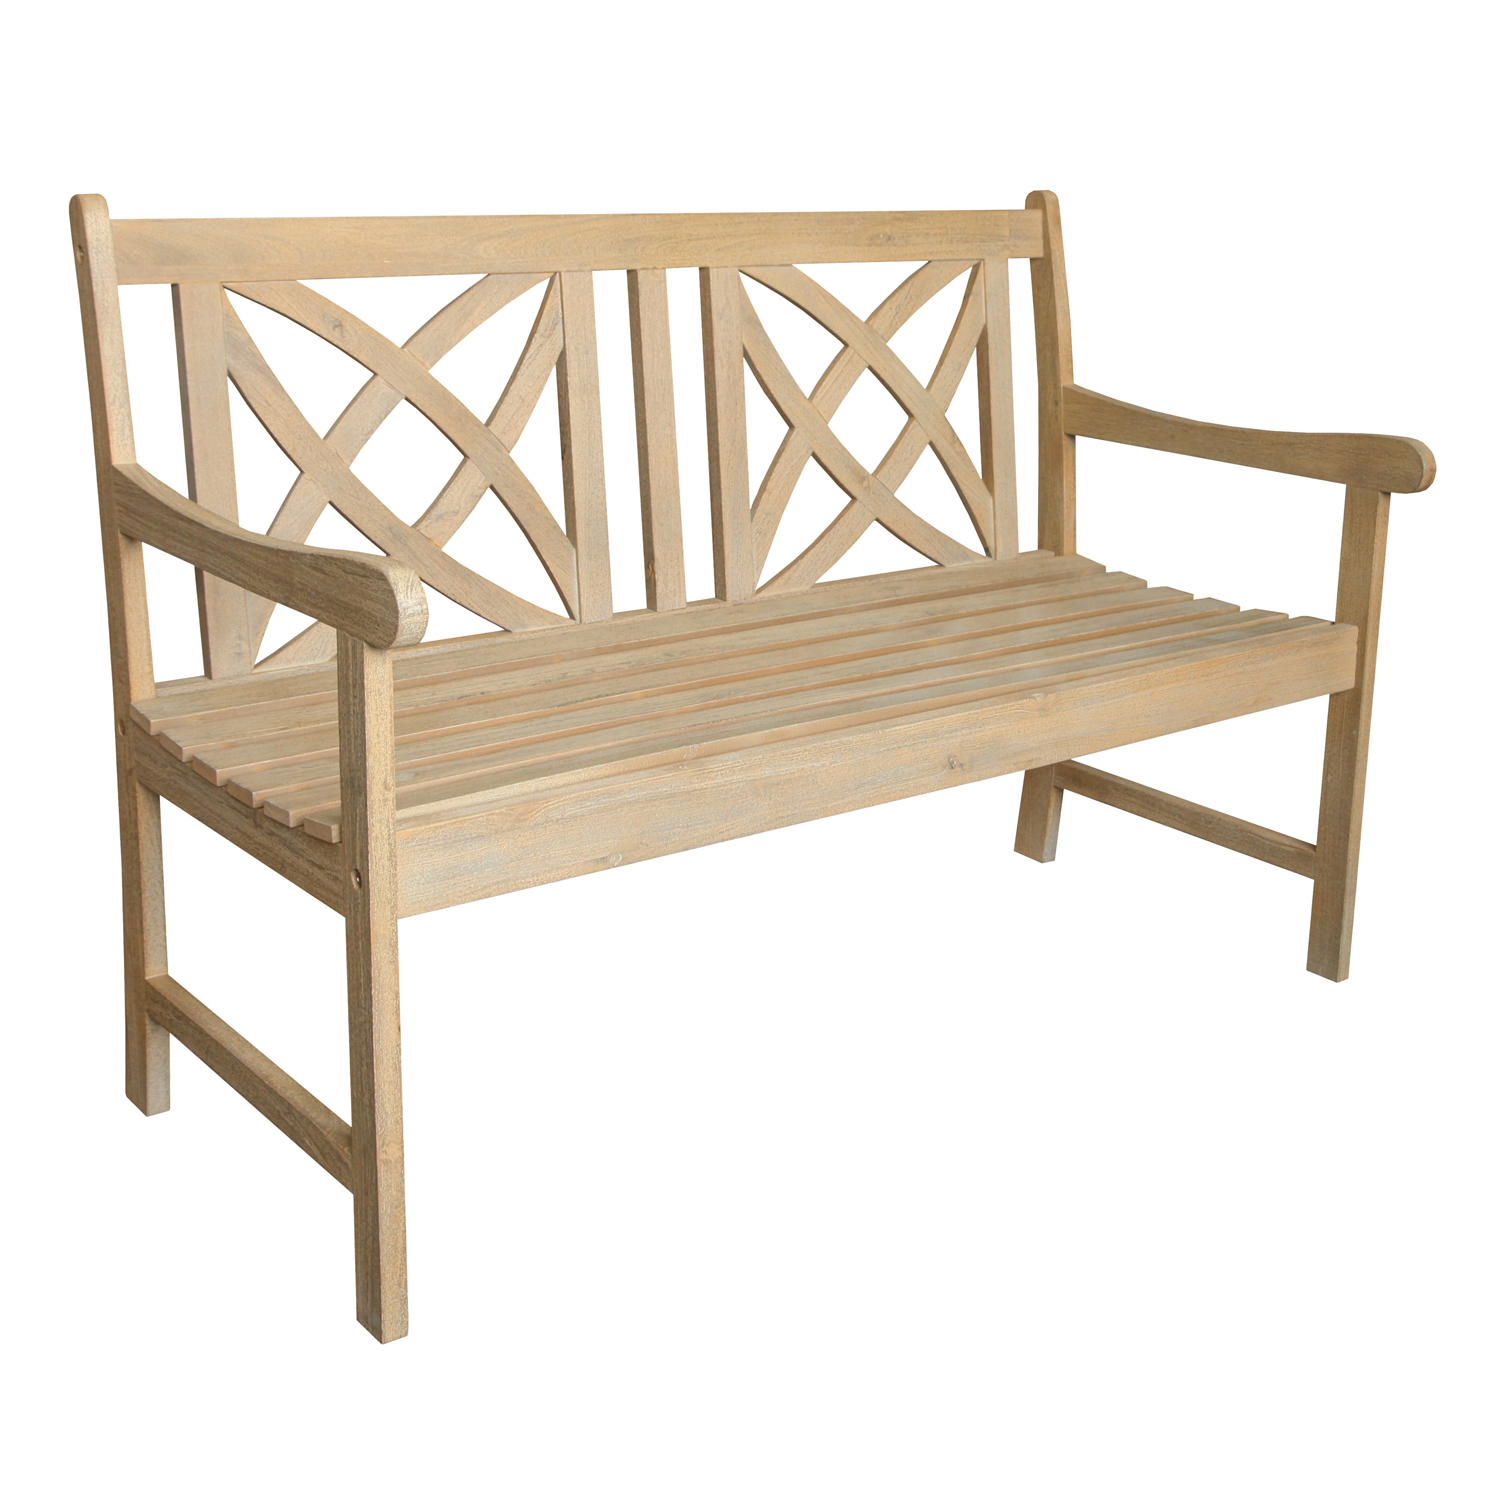 4' Beige Outdoor Garden Bench with Sand-splashed Finish